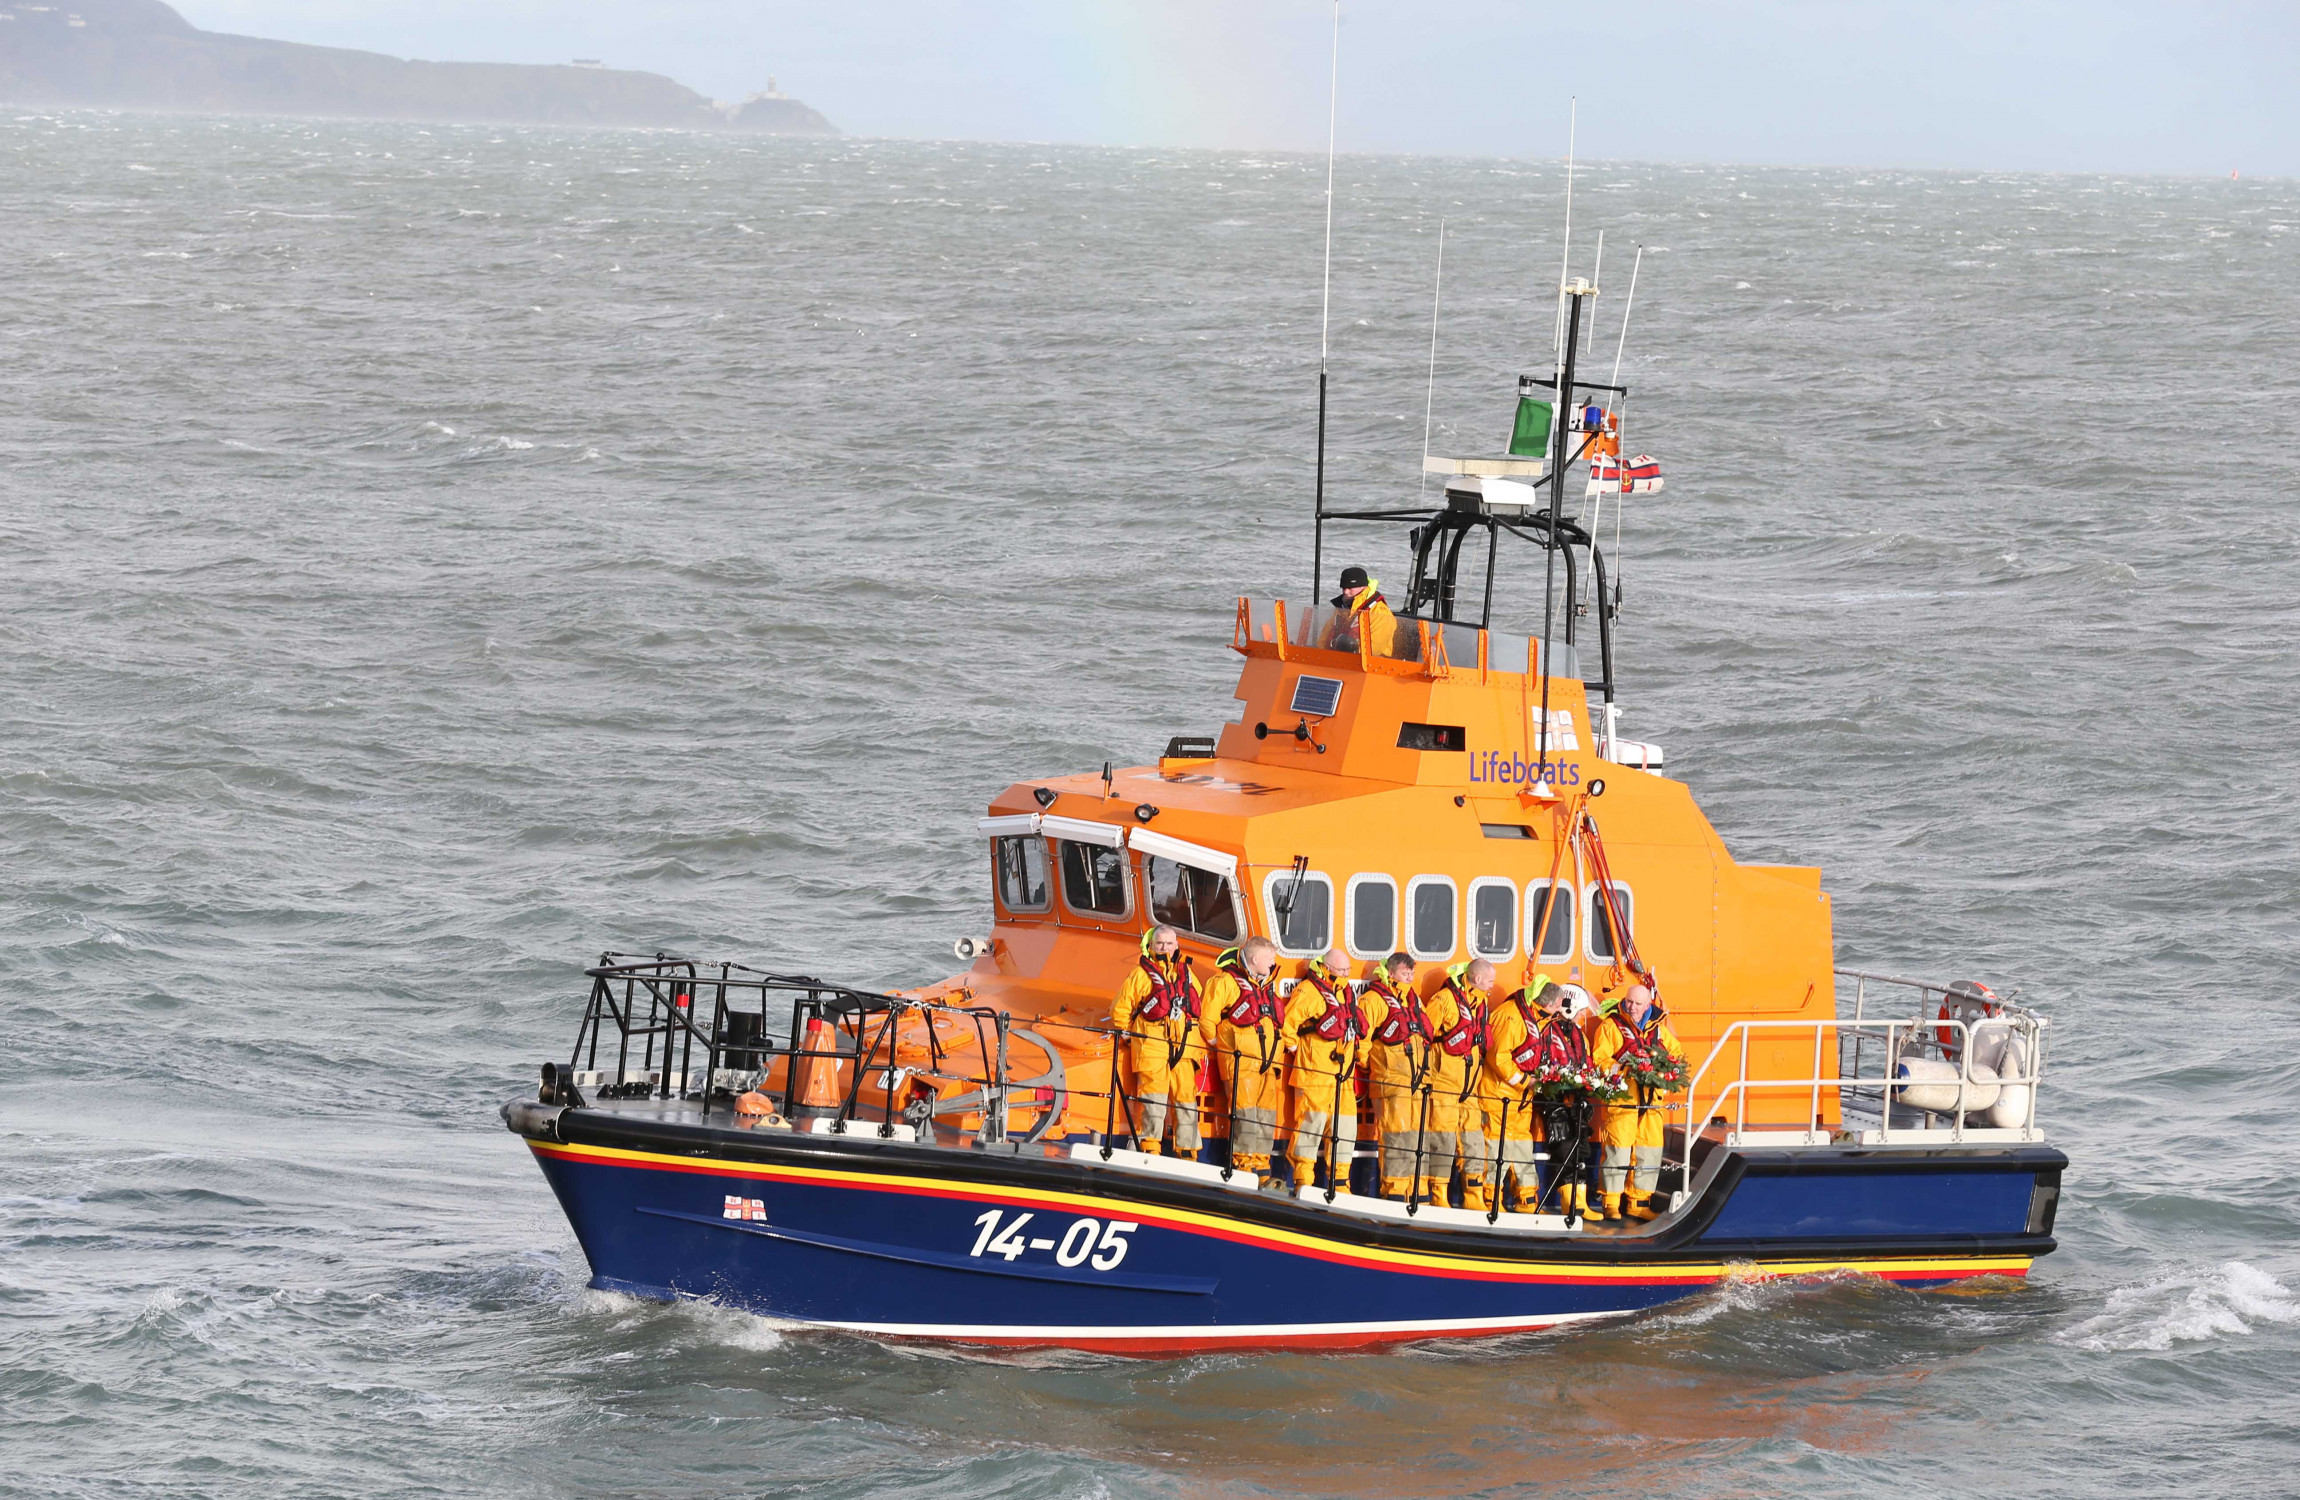 Major search operation underway as vehicle enters water in Howth